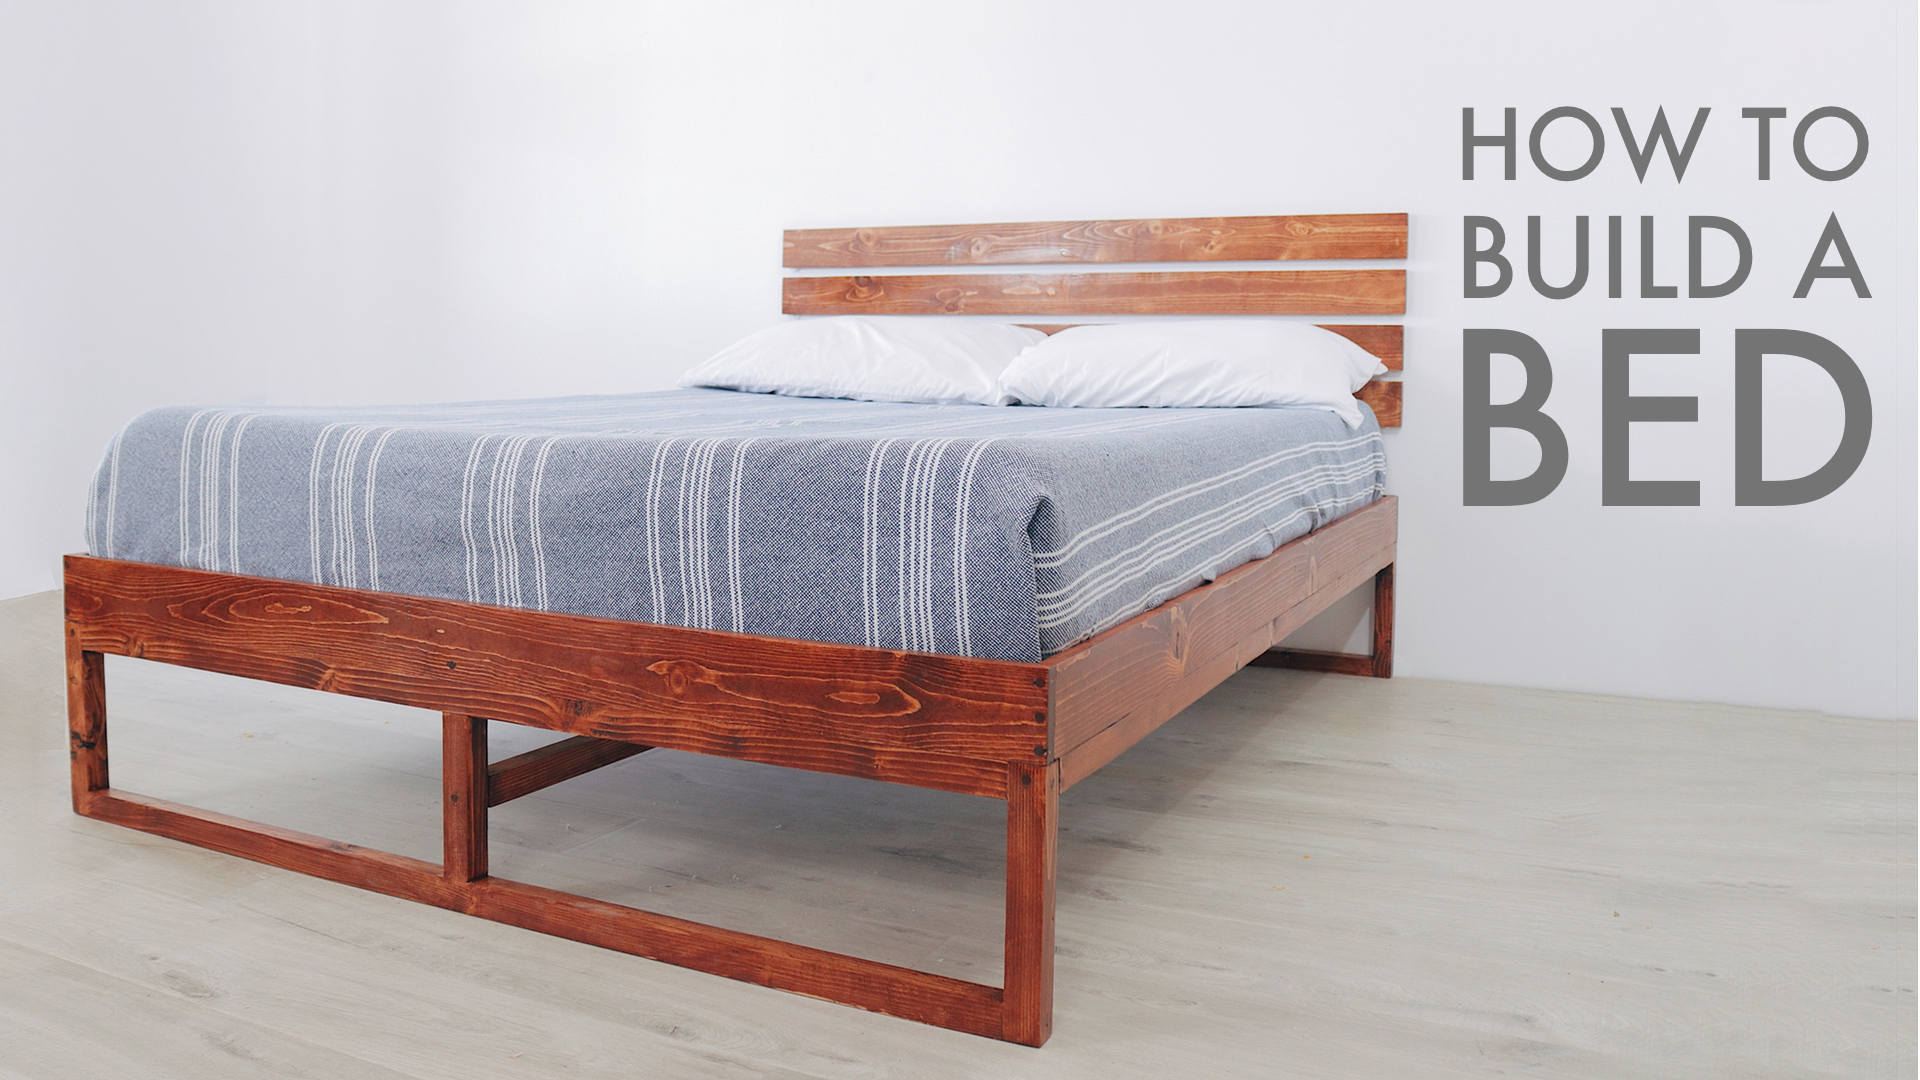 How to build a Full Sized Platform Bed with Limited Tools by: Mike Montgomery | Modern Builds